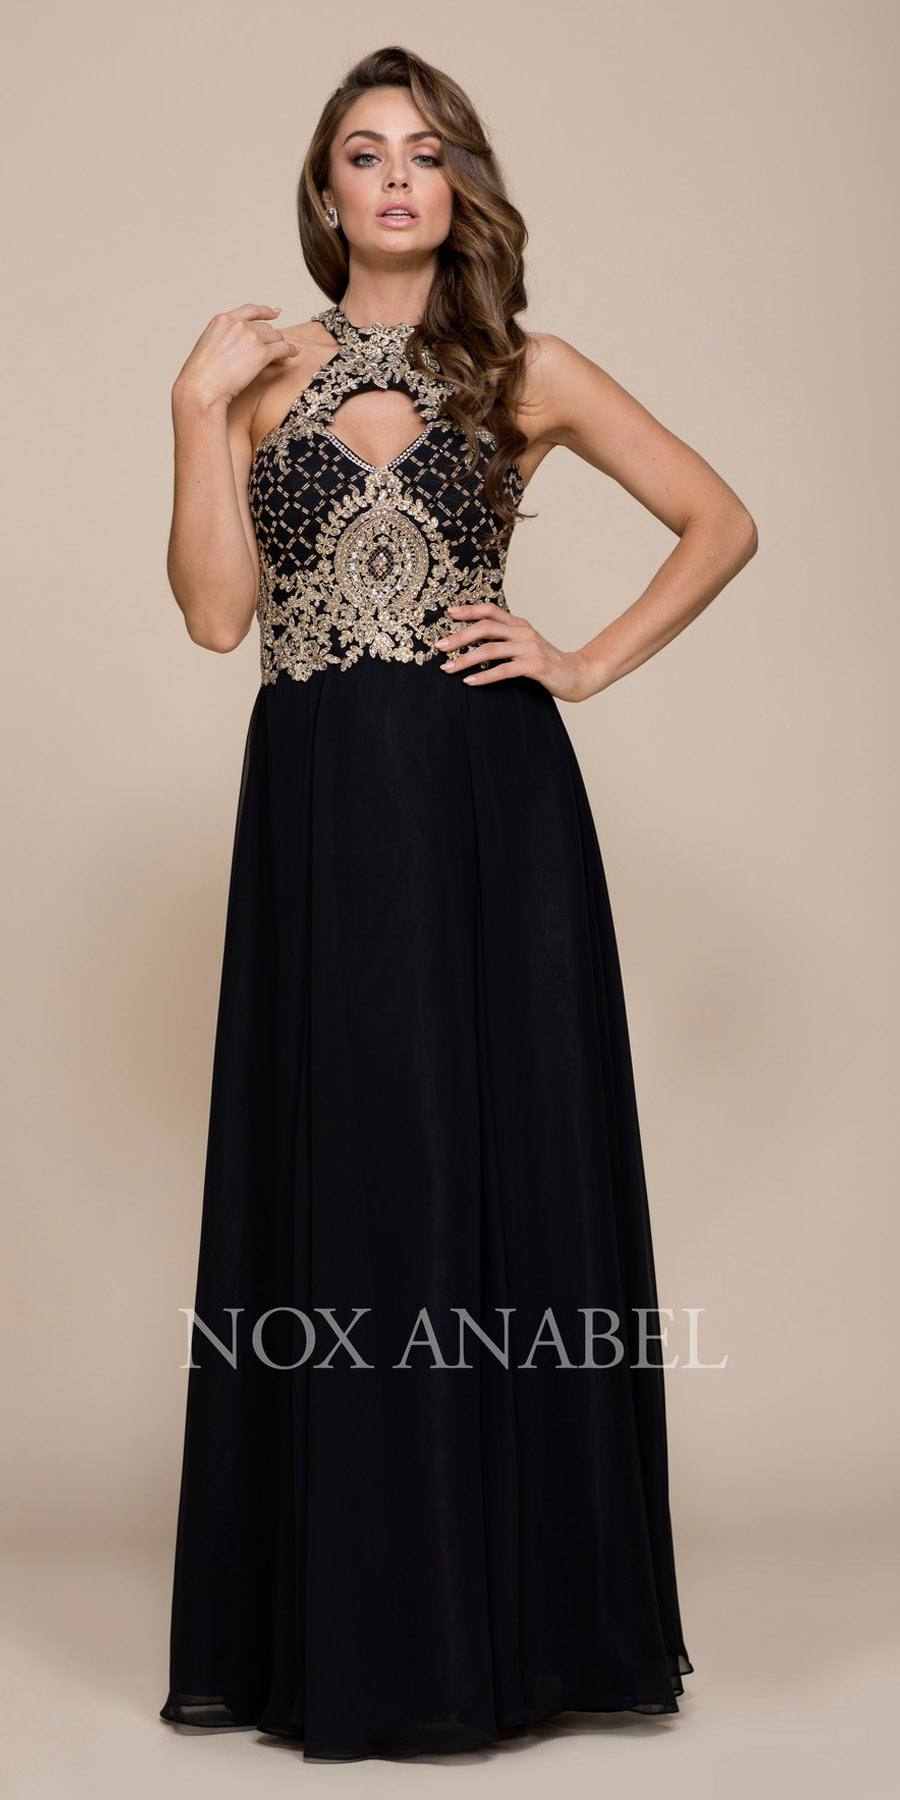 801bfa77fa49 Black/Gold A-line Long Prom Dress with Sweetheart Cut-Out Neckline ...